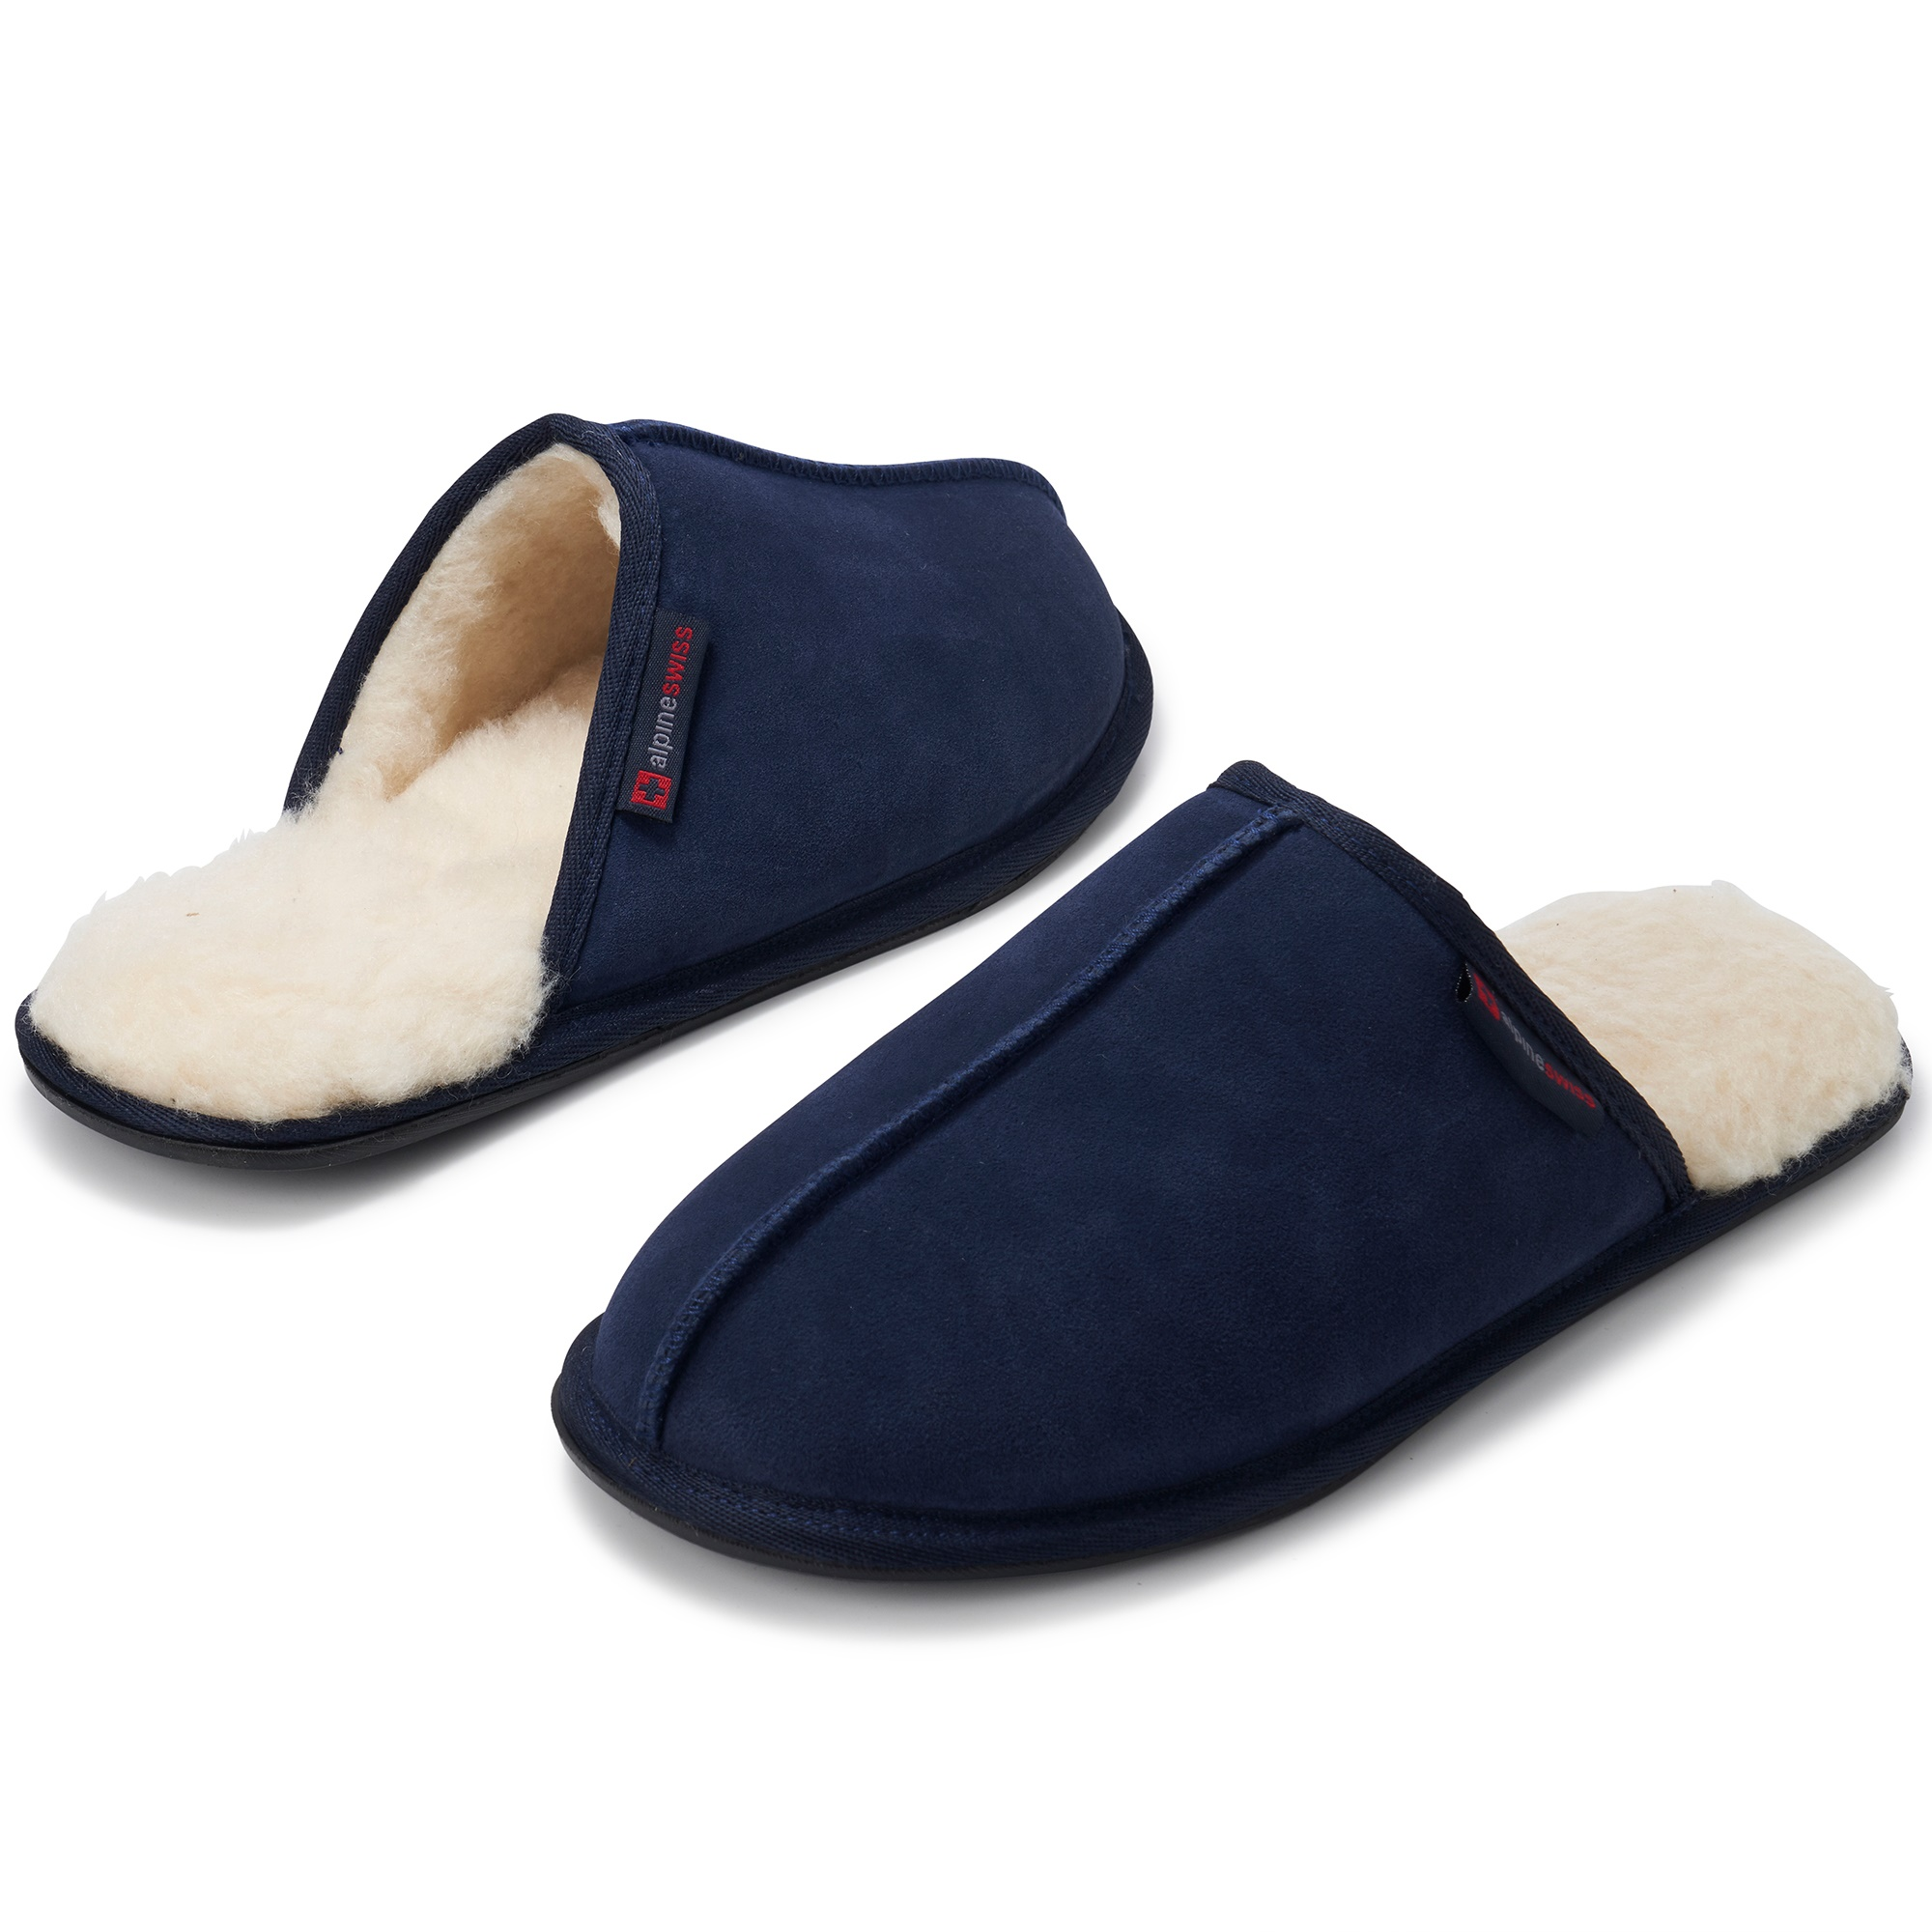 Alpine-Swiss-Mens-Suede-Memory-Foam-Scuff-Slippers-Comfort-Slip-On-House-Shoes thumbnail 32